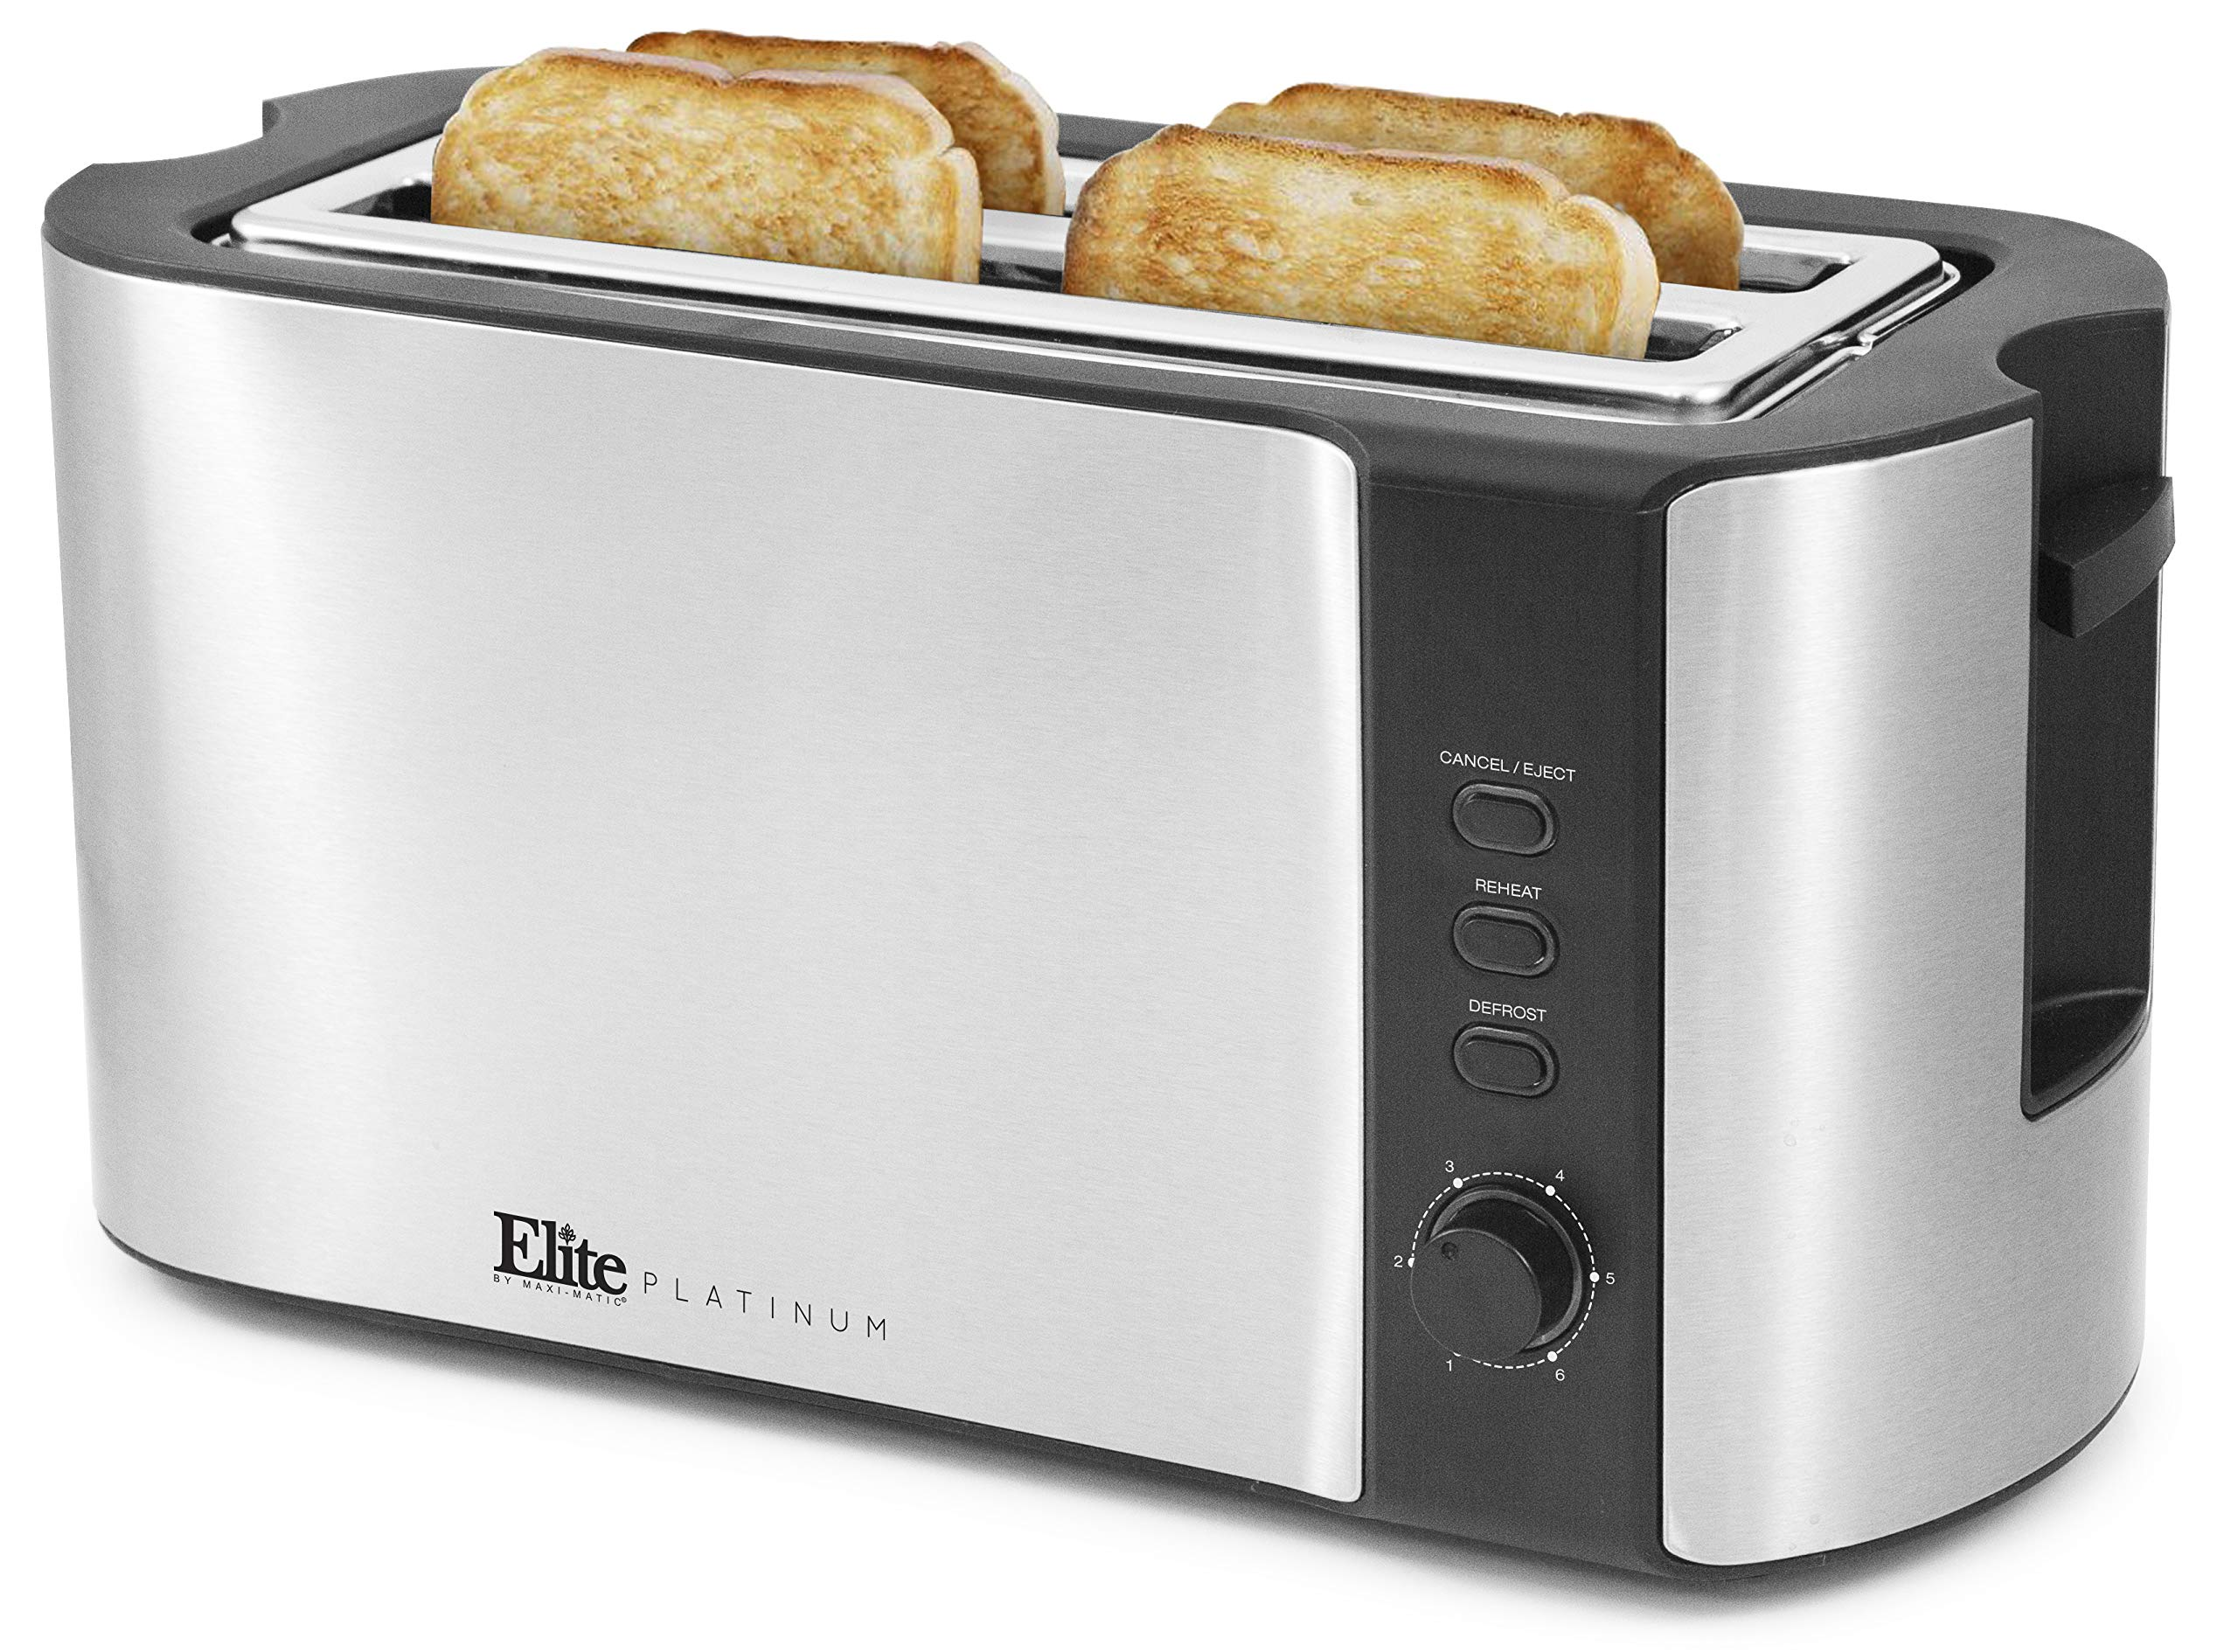 Elite Platinum ECT-3100 Cool Touch Long Slot Toaster with Extra Wide 1.25'' Slots for Bagels, 6 Settings, Space Saving Design, Warming Rack, 4 Slice, Stainless Steel & Black by Maxi-Matic